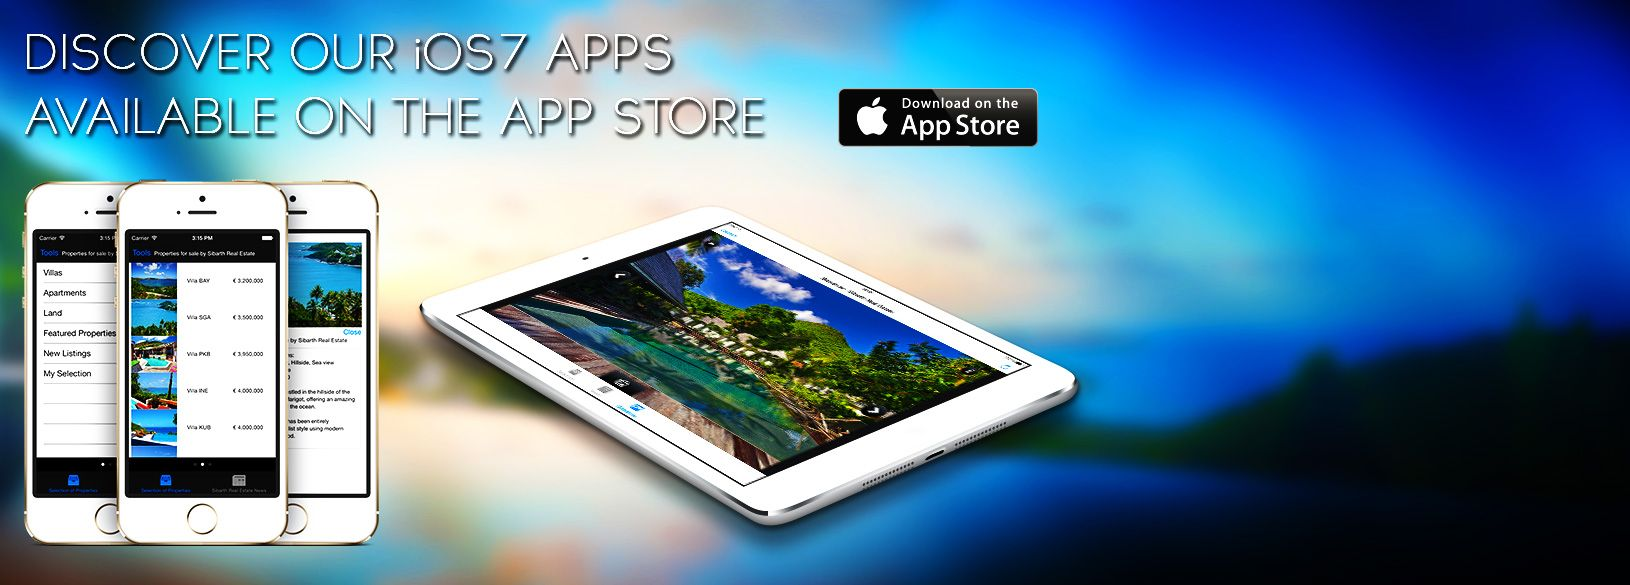 Discover our iOS 7 Apps for iPad and iPhone - Sibarth Real